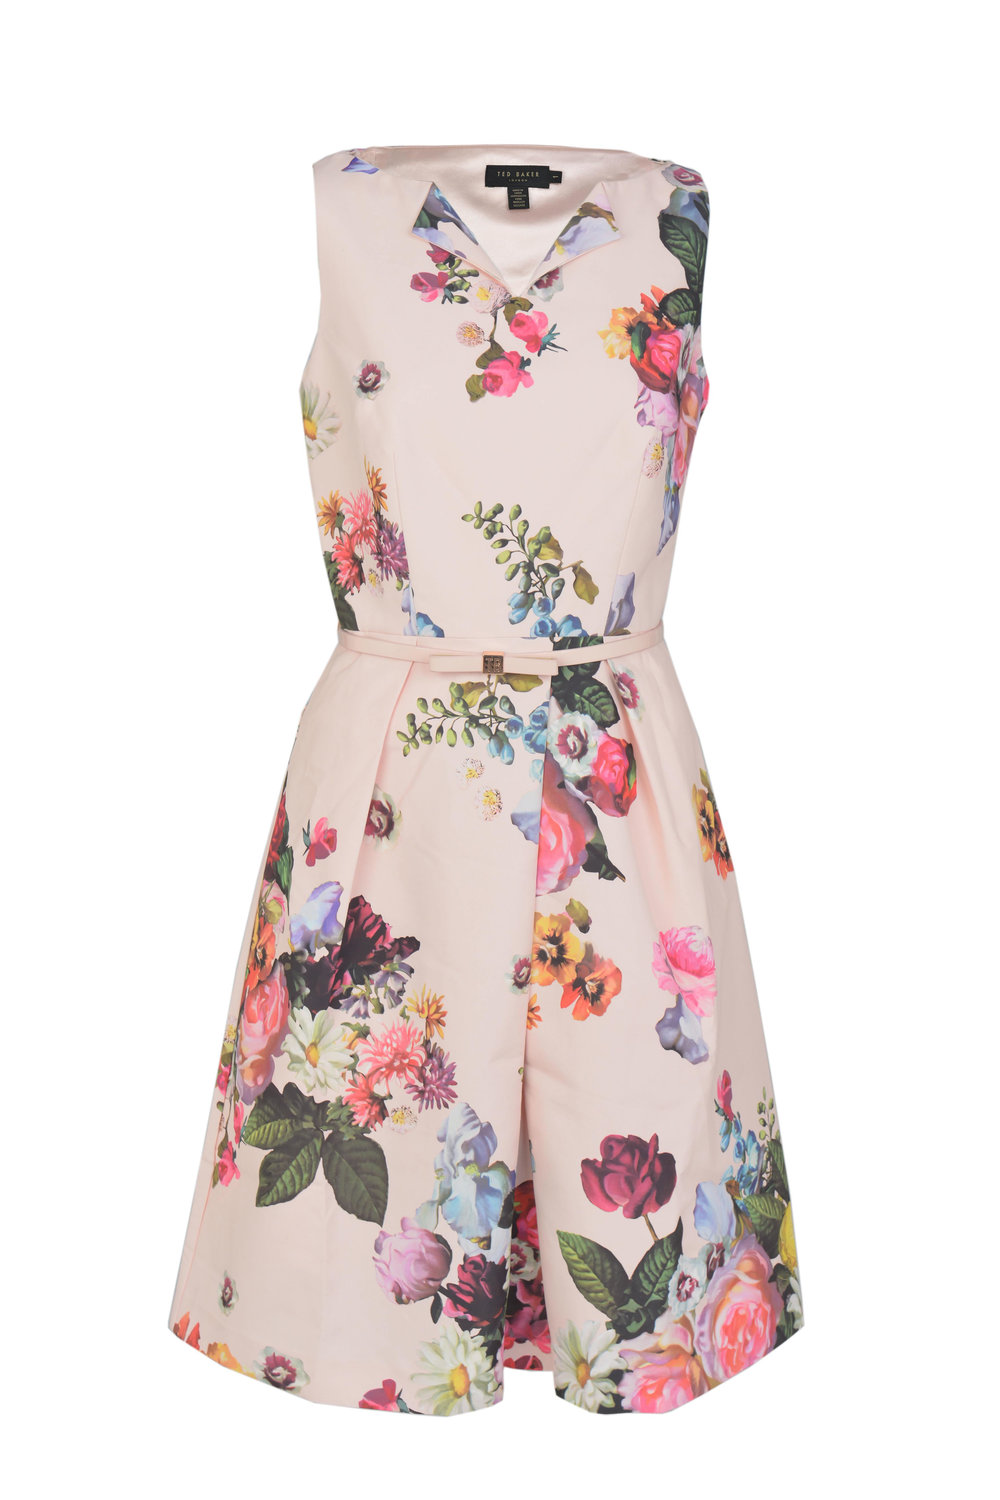 Ted Baker - Original price  240 € - Outlet price in MMV 149 € - LR